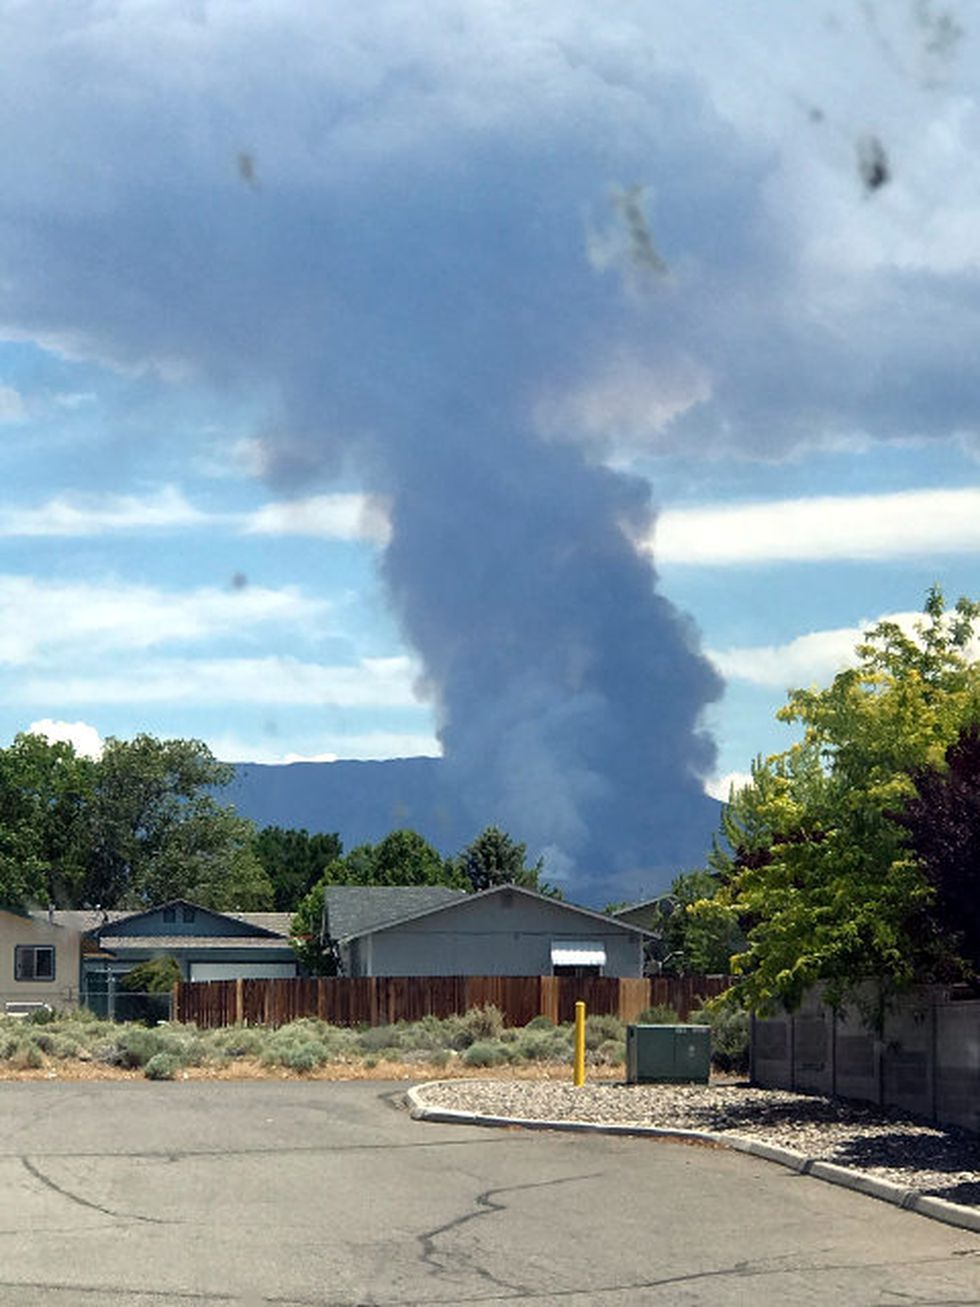 Ronald Beever submitted this photo of the Monarch Fire in Douglas County.